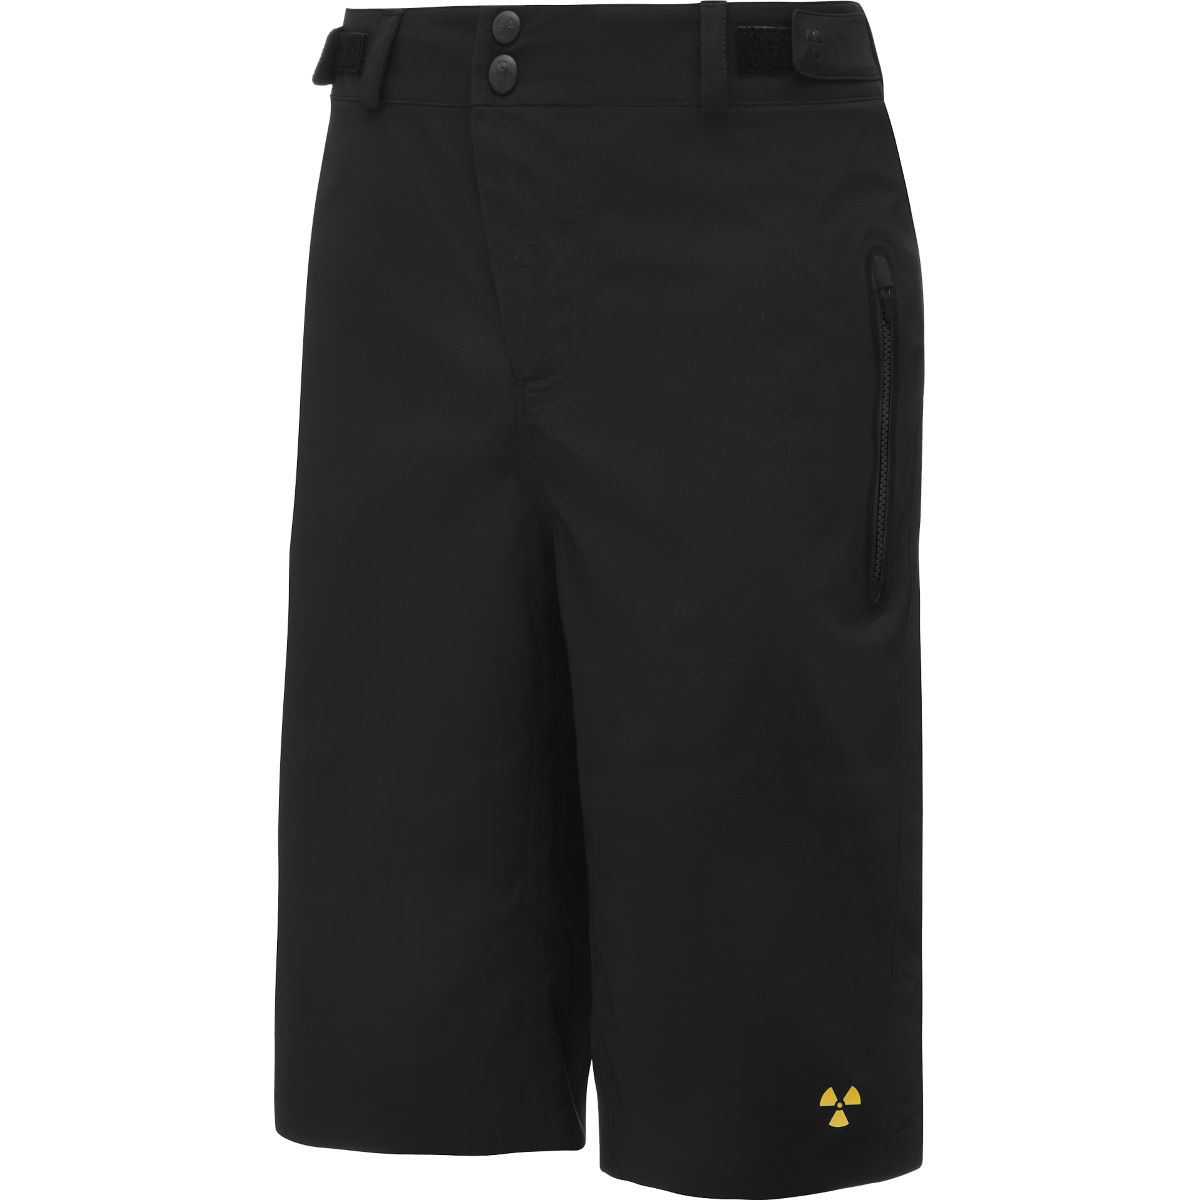 Nukeproof Nukeproof Blackline Waterproof Short   Baggy Shorts